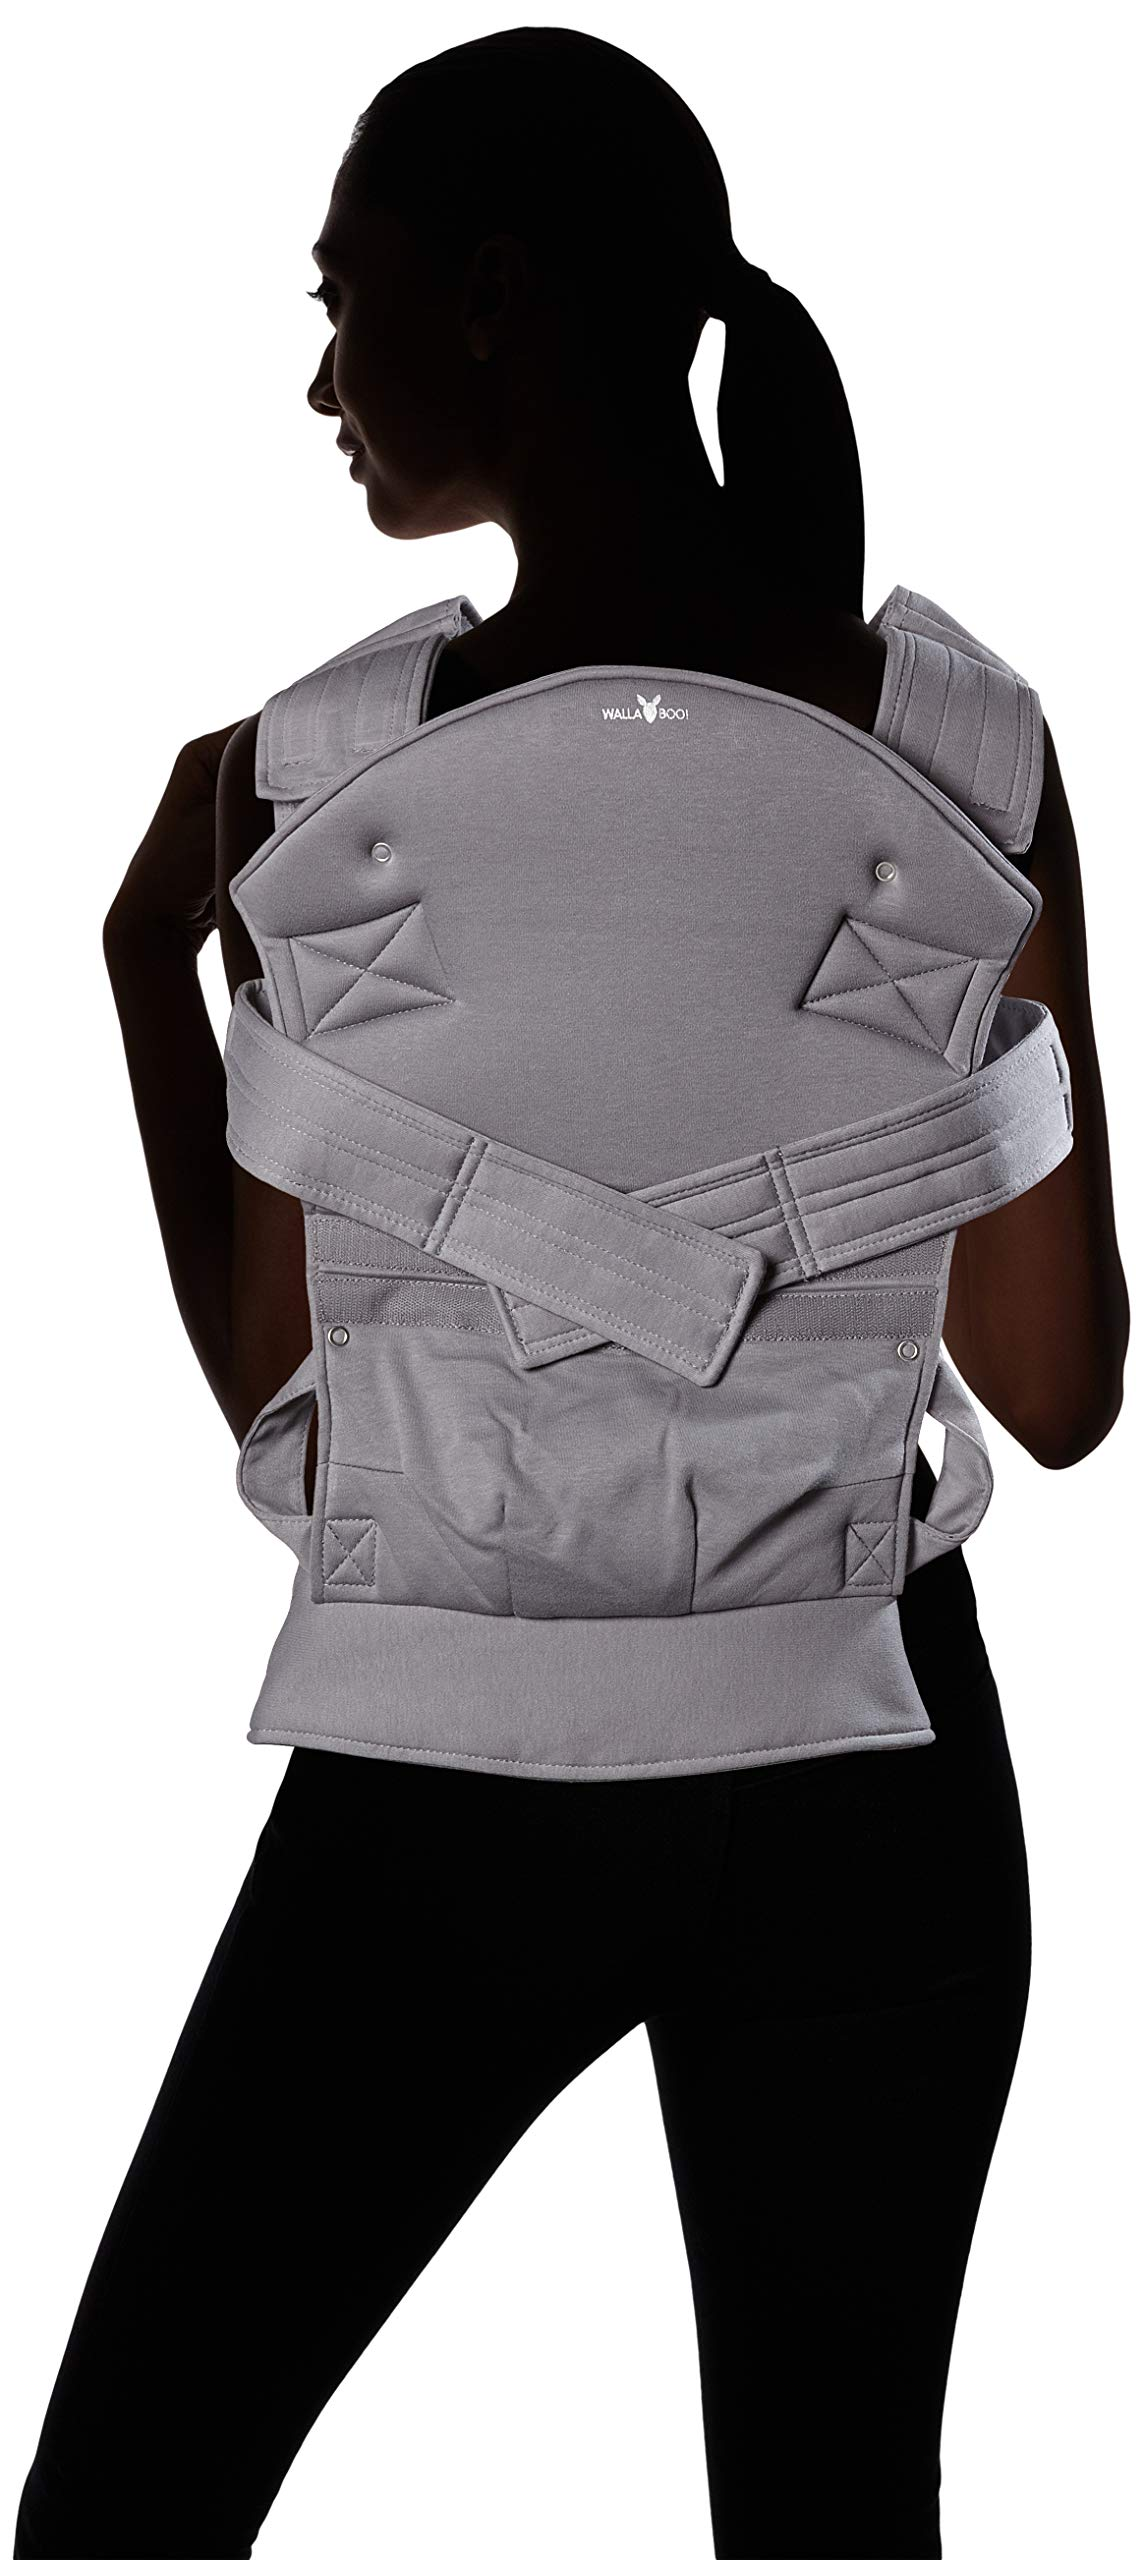 Wallaboo Baby carrier Ease, Hig Quality, Easy Adjustable and Ergonomic Front Carrier, 2 carrying poitions, Strong 100% cotton, Newborn 8lbs to 33lbs, Colour: Grey Wallaboo Ergonomic carrying with wide leg position (m-position) Sturdy waist belt and padded shoulder straps. Age suitability: babies from 3,5kg / 8 lbs to 15kg / 33 lbs. Walla boo baby carrier is made with 100% breathable cotton, makes baby feel comfortable and cozy 10